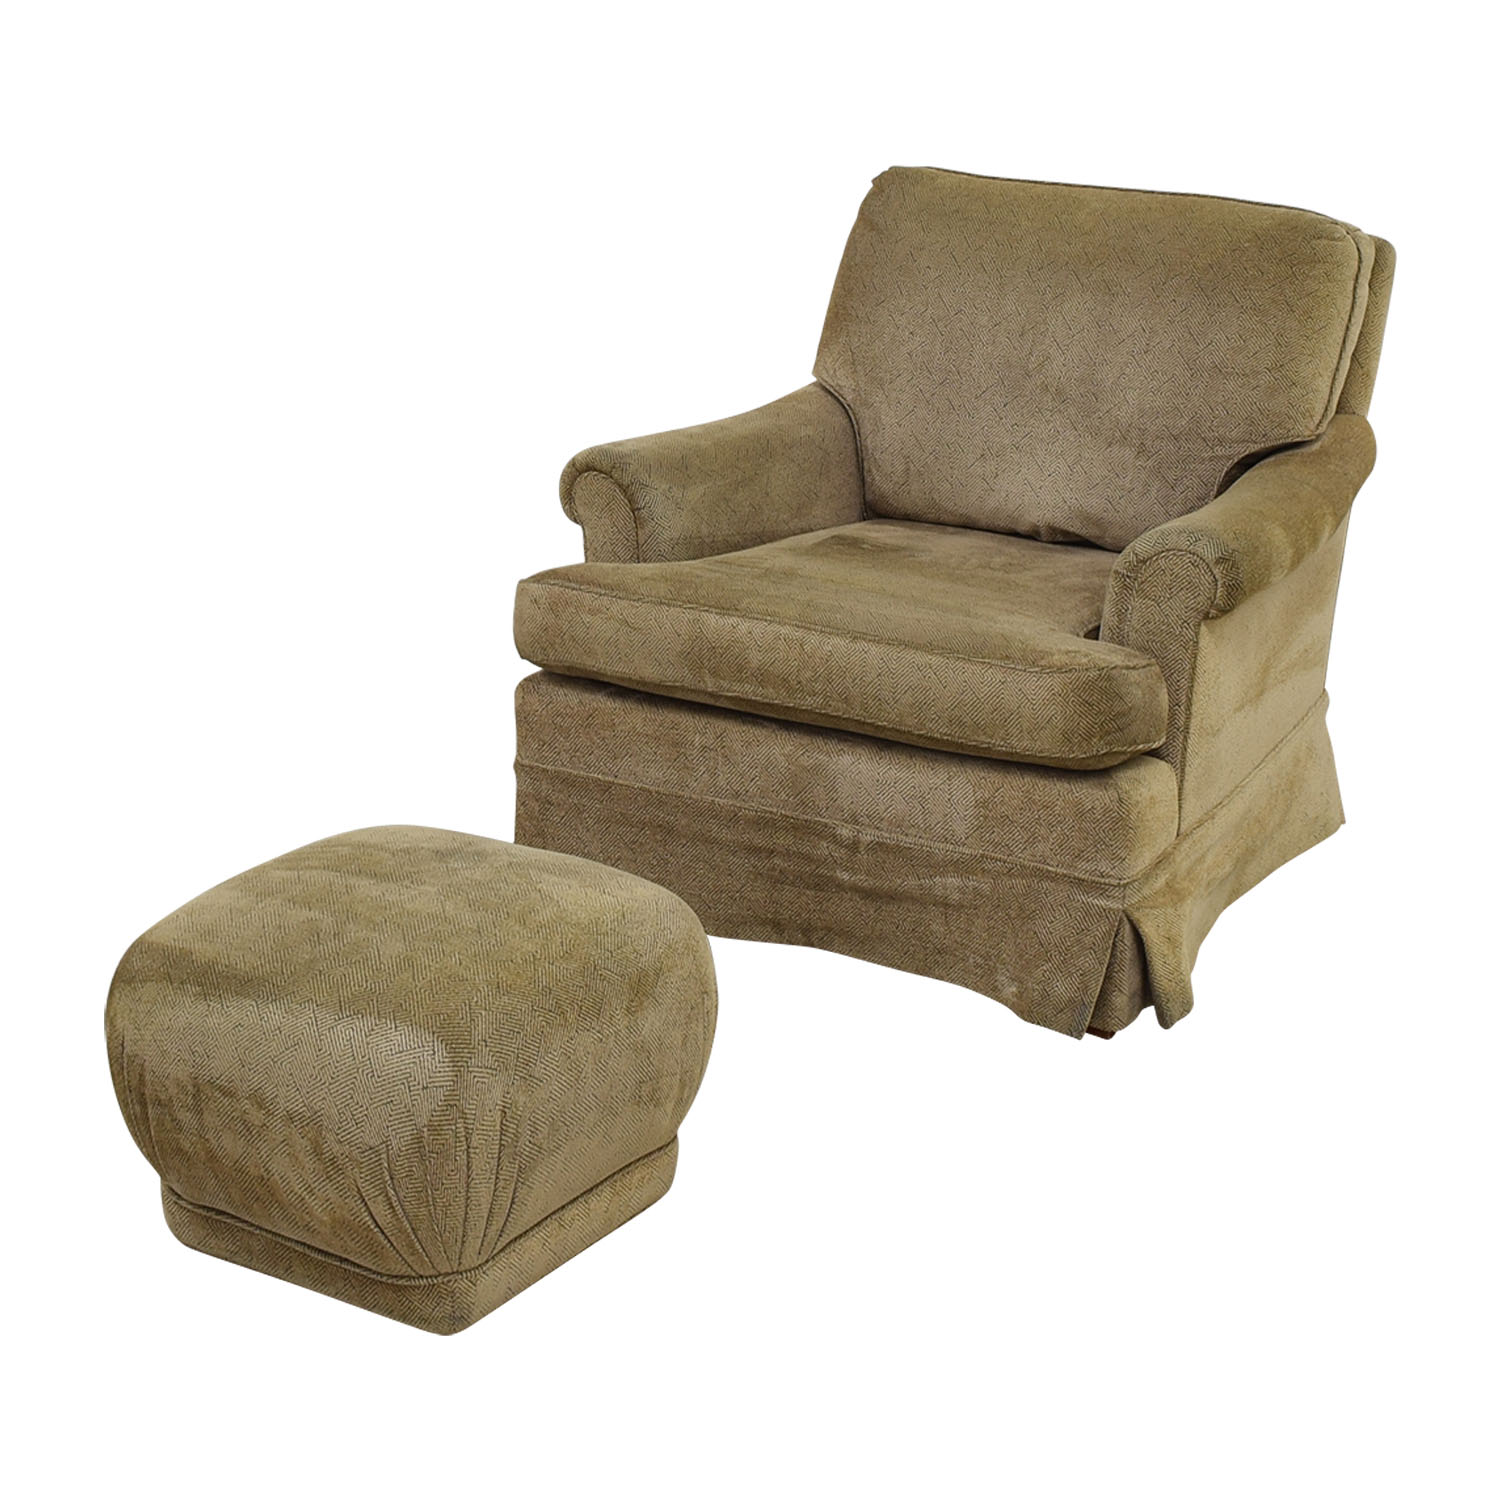 buy Tan Upholstered Accent Chair with Foot Stool Accent Chairs